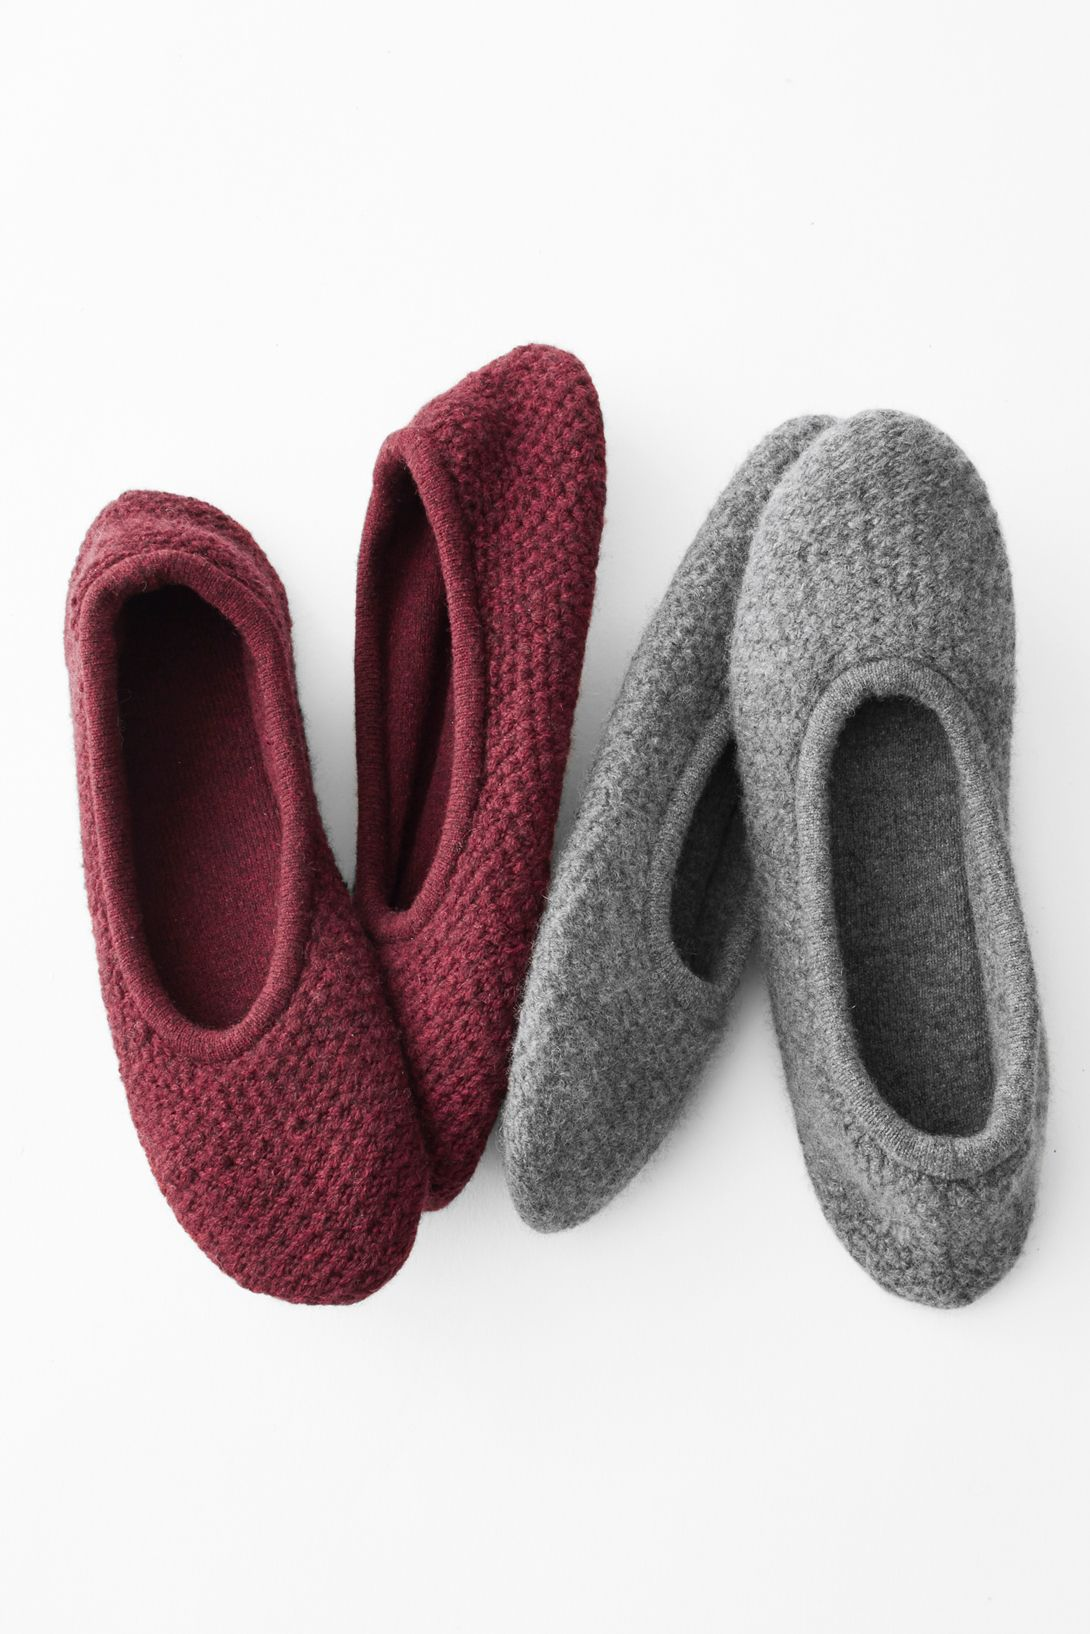 e4925cc6a8e2 10 Best Slippers for Women - Reviews of Top House Slippers